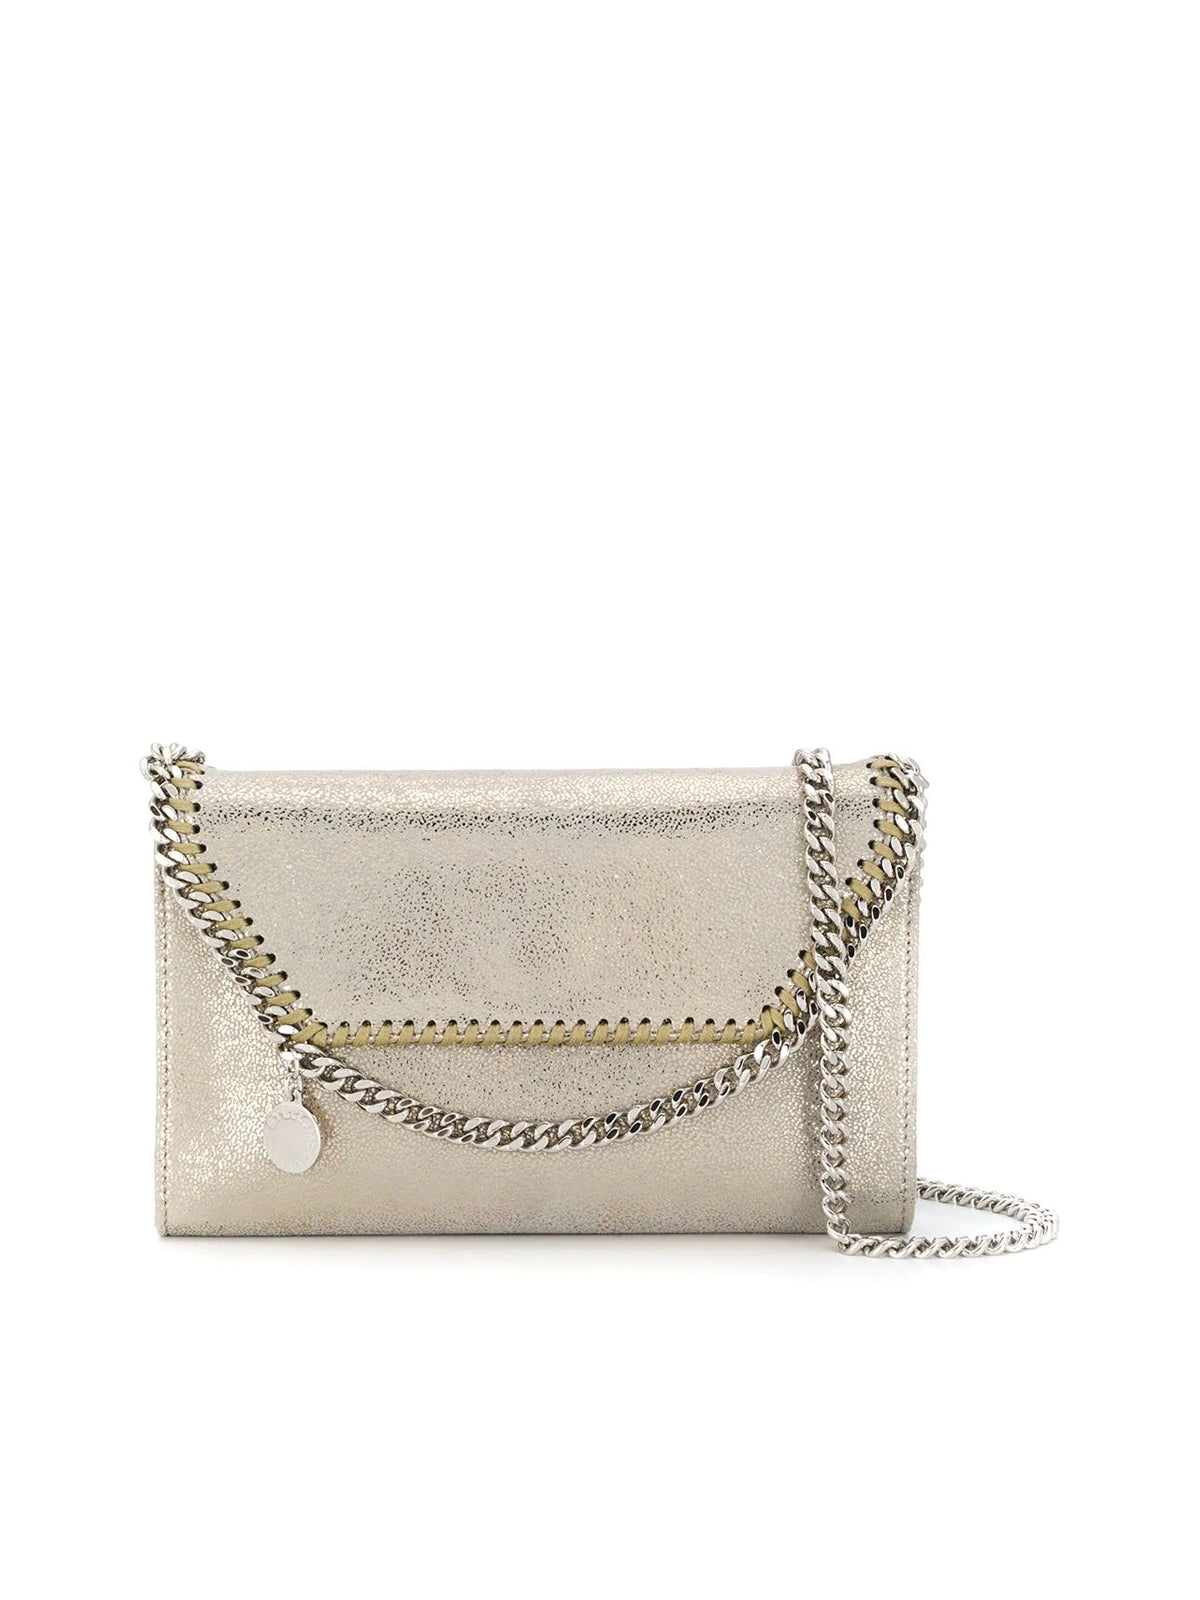 small Falabella crossbody bag